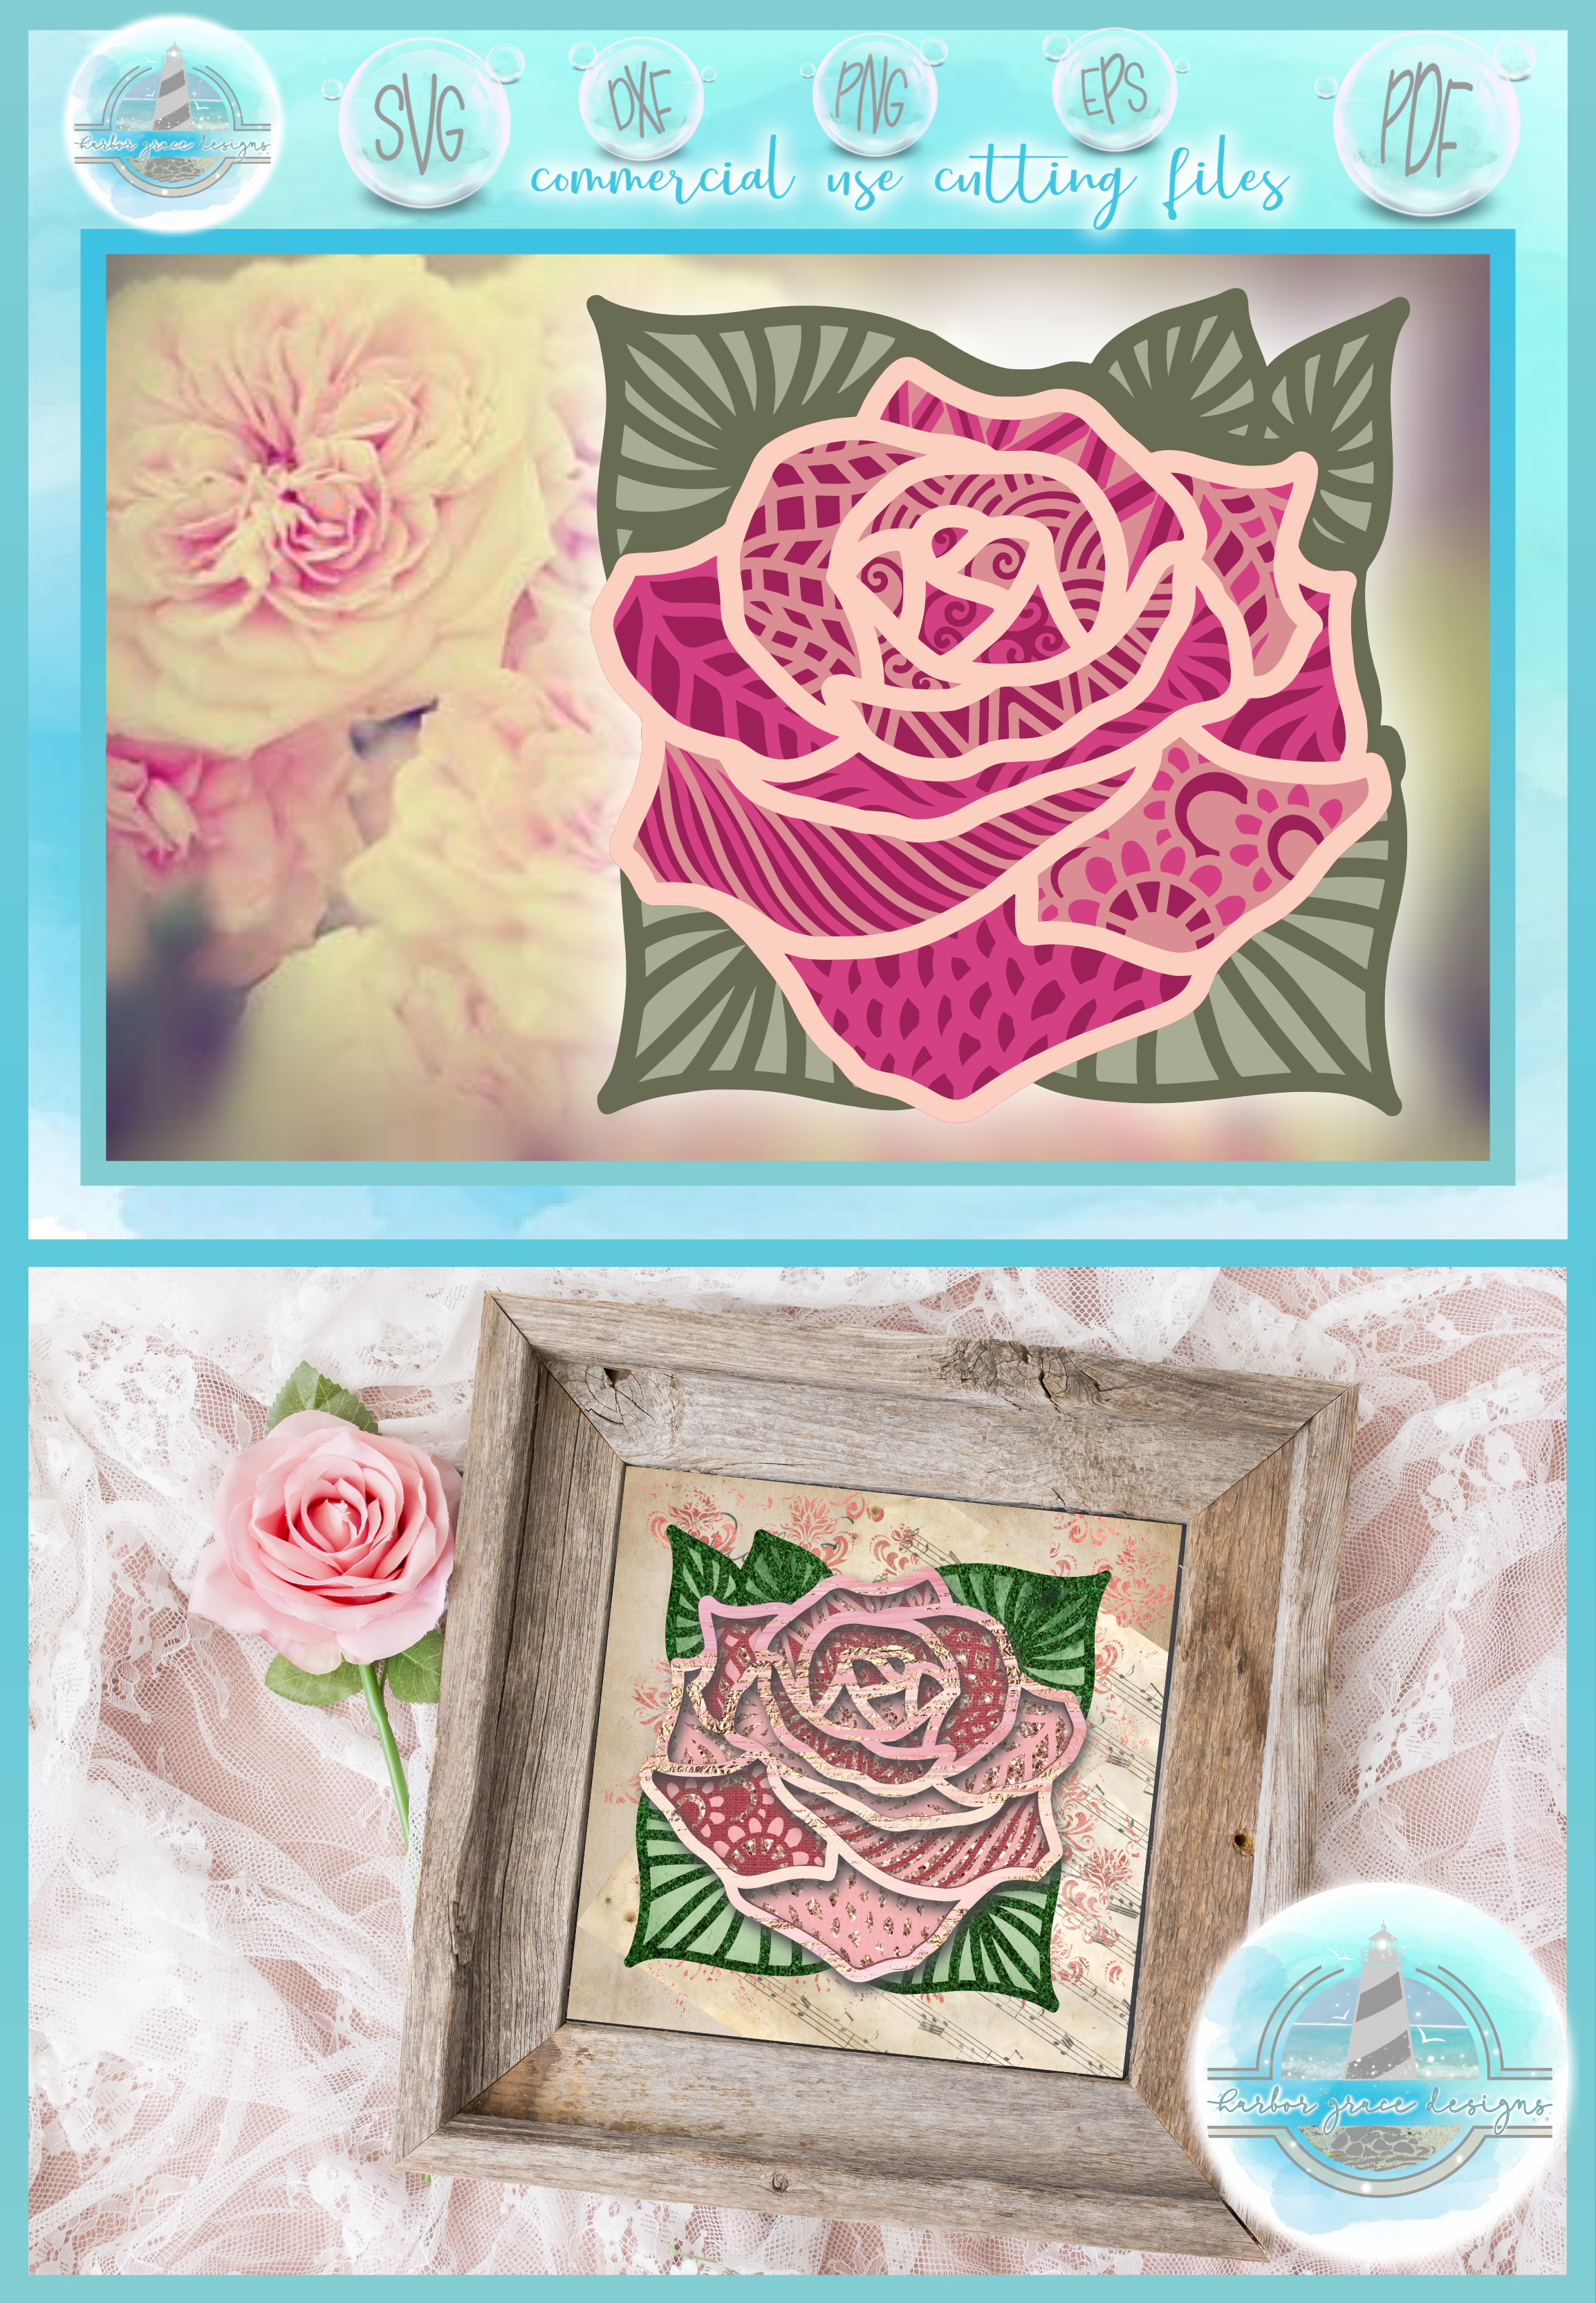 Download Pin on ♥SVG & Printables♥ with Harbor Grace Designs